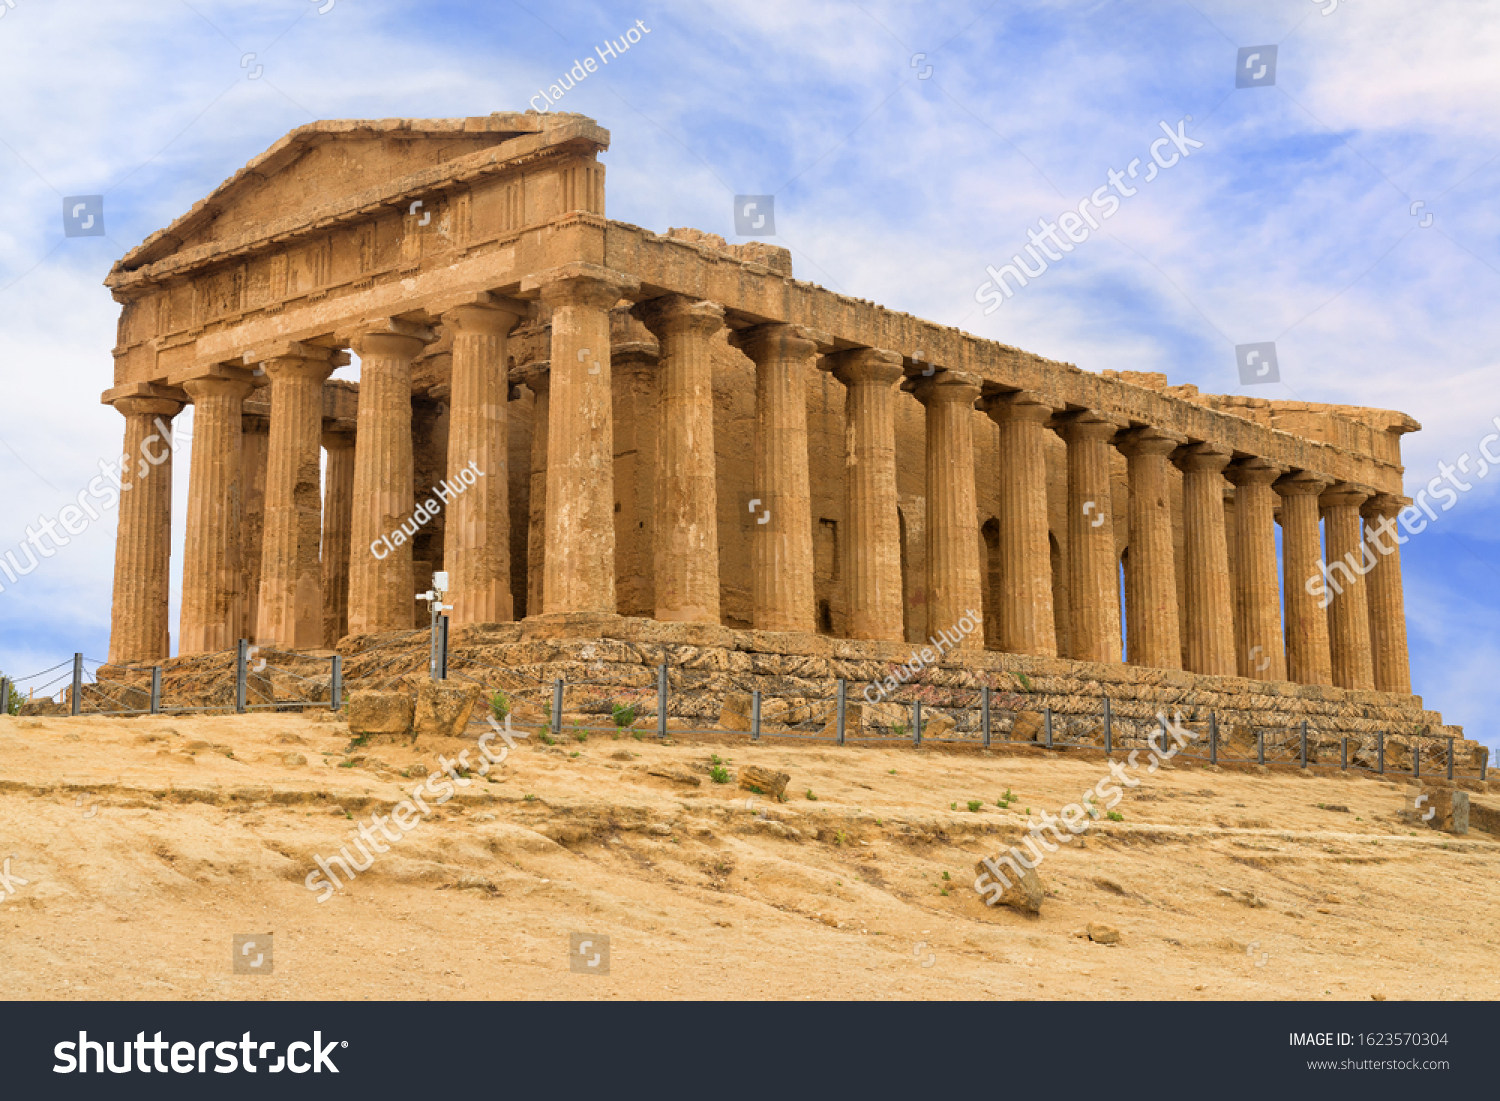 The Temple of Concordia is one of the best preserved in the Valley of the Temples in Agrigento, Sicily, Italy. It was built in the 5th century BC and turned into a church in the 6th century AD.